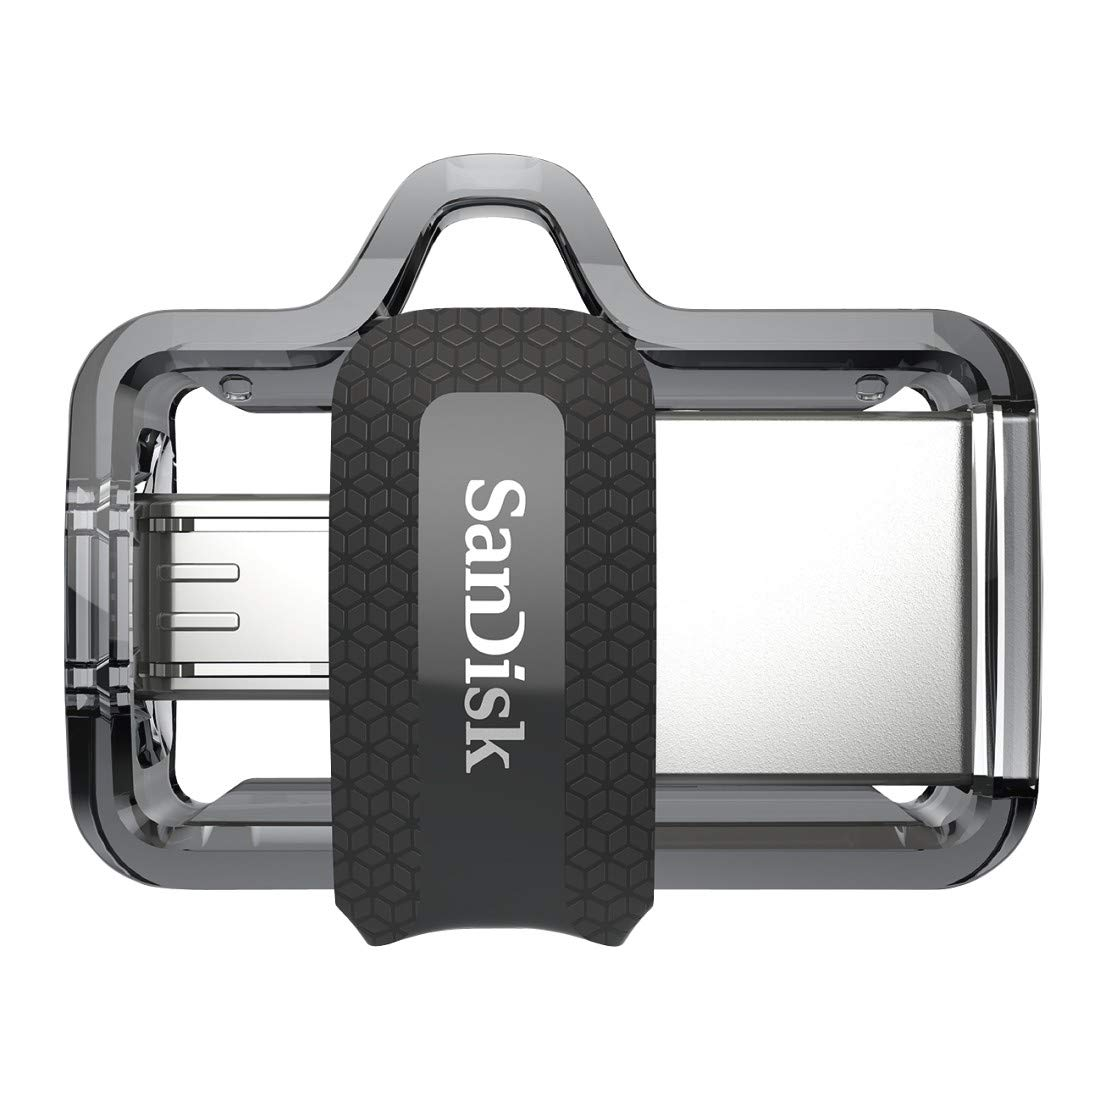 SanDisk 256GB Ultra Dual Drive m3.0 for Android Devices and Computers - microUSB, USB 3.0 - SDDD3-256G-G46 by SanDisk (Image #2)